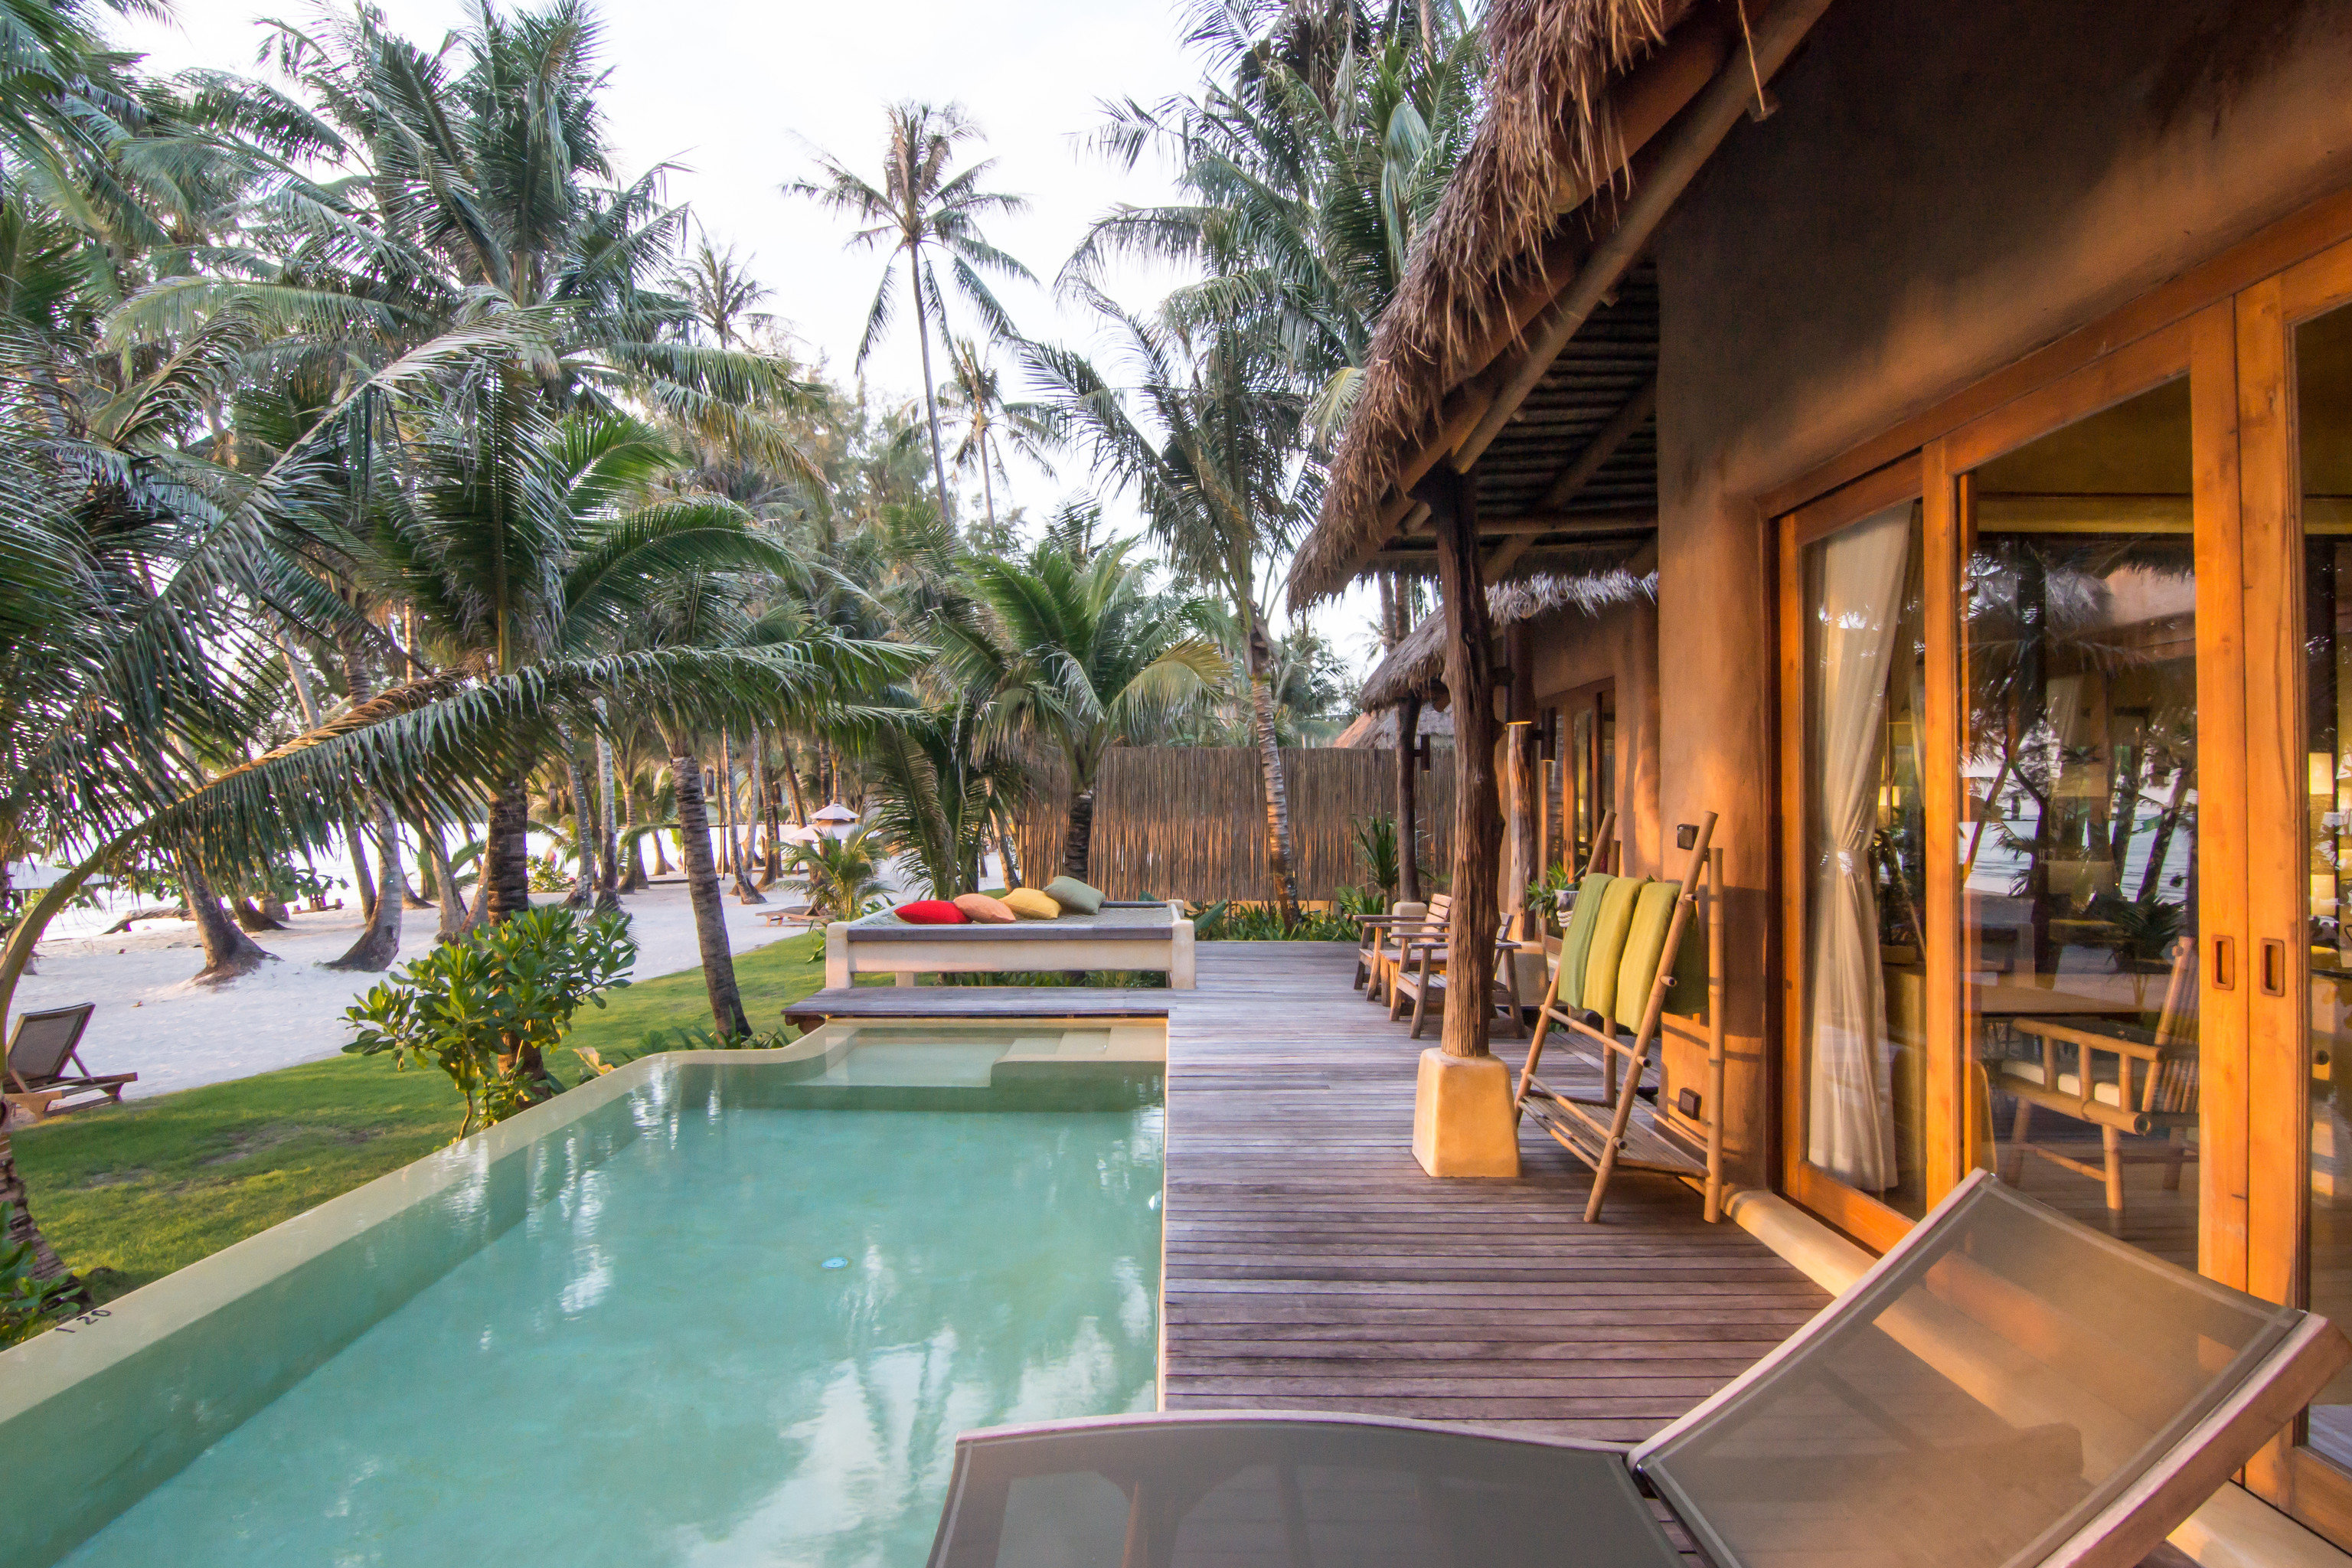 Jetsetter Guides tree outdoor Resort property leisure building vacation swimming pool estate Villa resort town real estate eco hotel